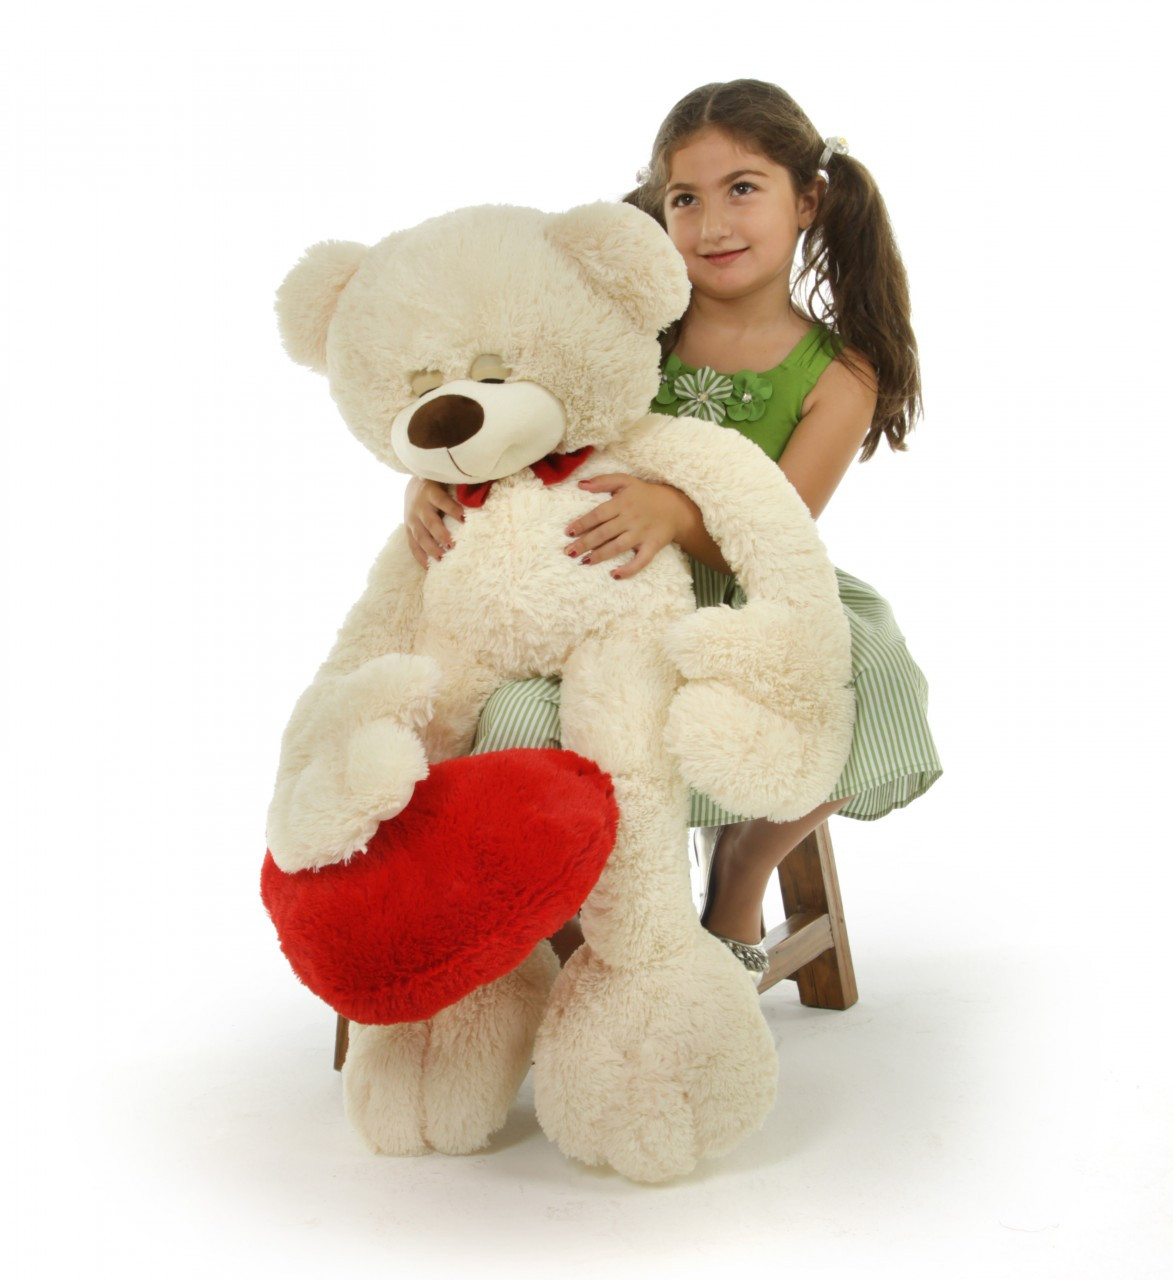 Super Cute Cream Teddy Bear with Red Heart